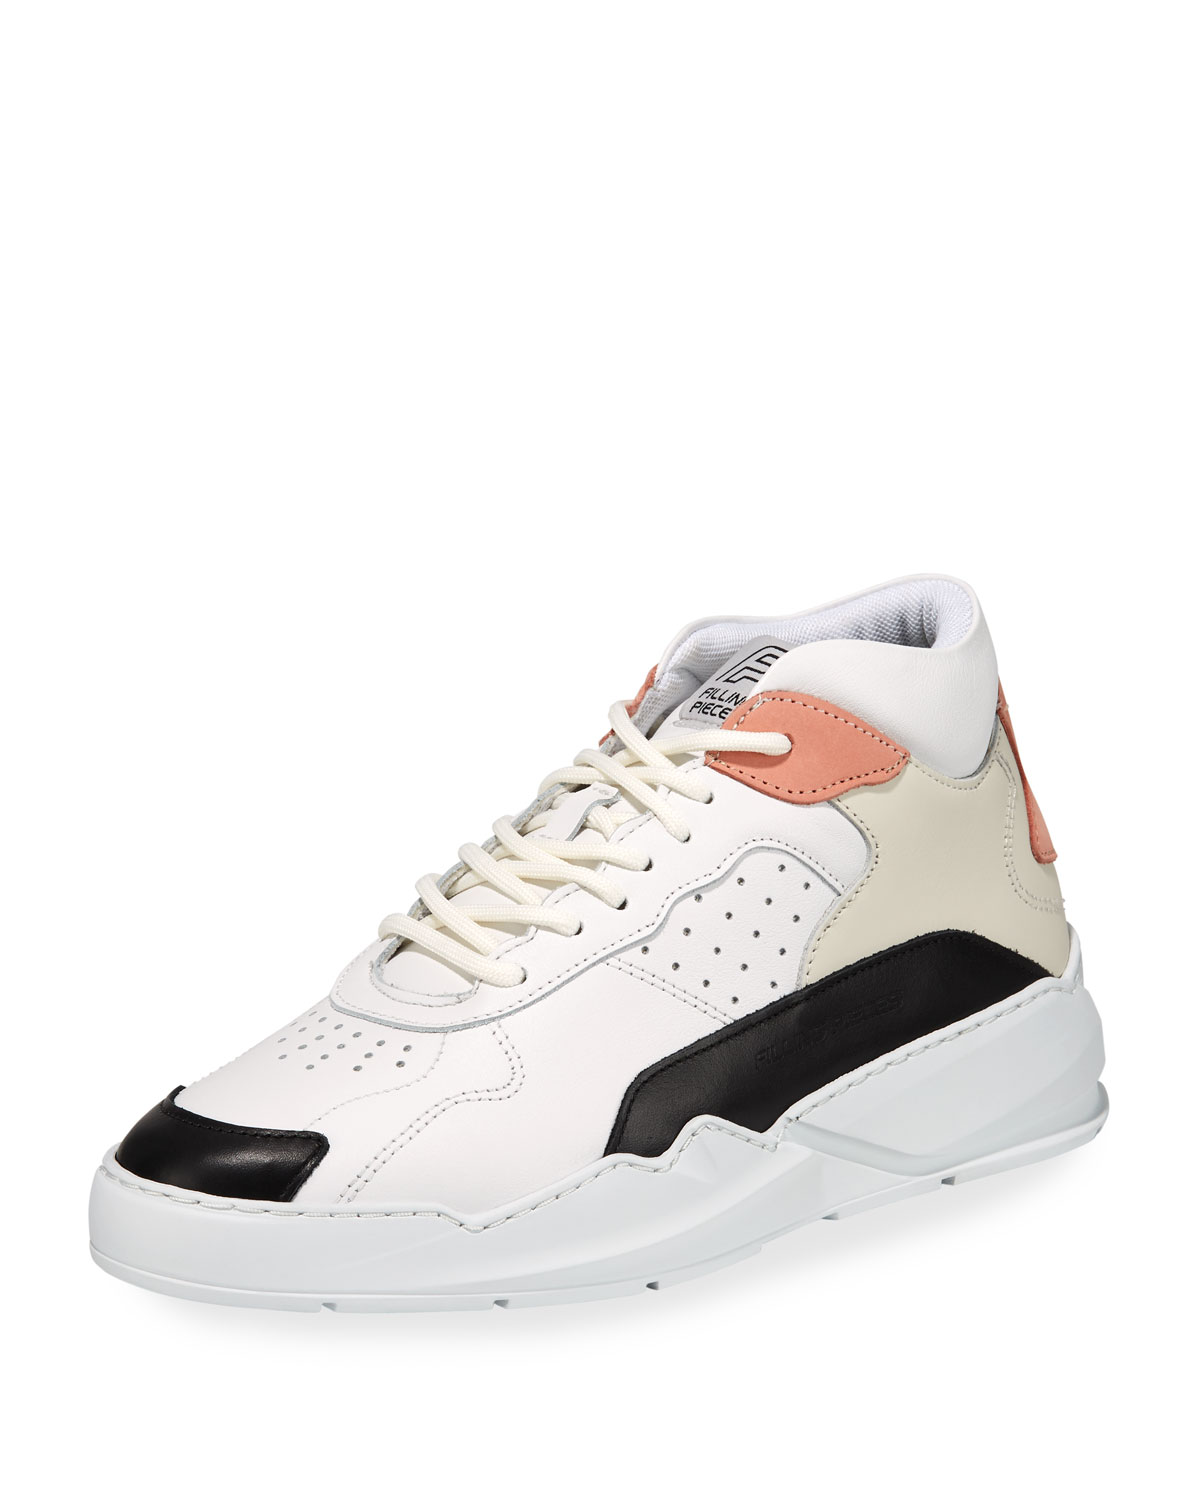 Filling Pieces Sneakers MEN'S FLOW MID-TOP LEATHER SNEAKERS